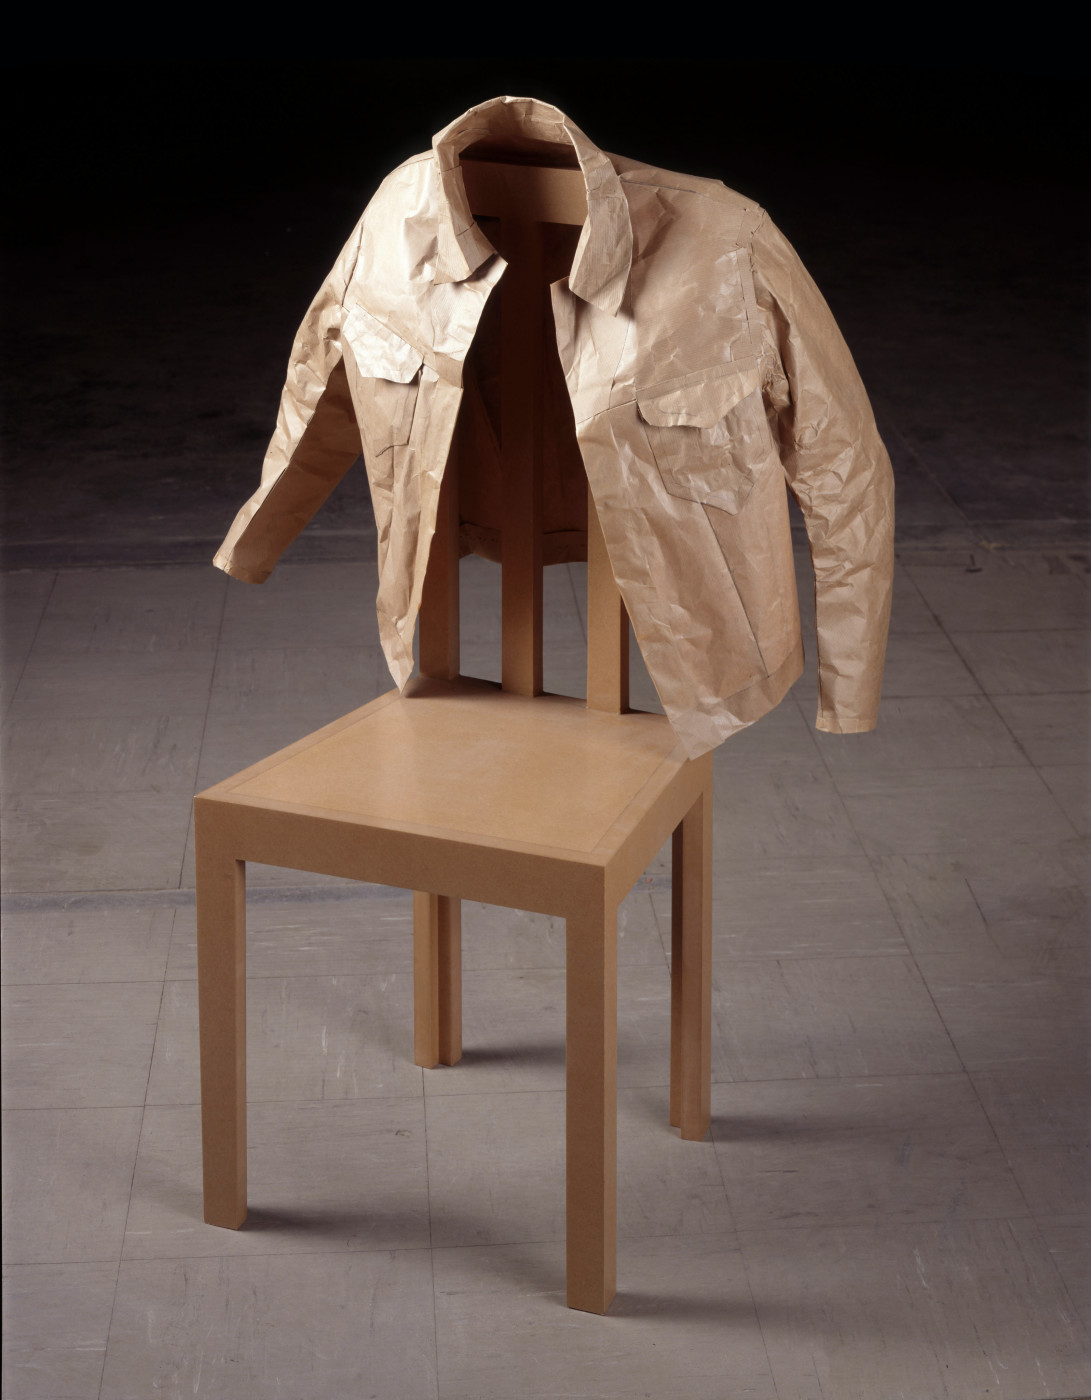 "<div class=""title""><em>Auto-erotic</em>, 1997</div><div class=""medium"">brown paper jacket, MDF chair</div><div class=""dimensions"">70 x 85 x 13 cm</div><div class=""dimensions"">27 ½ x 33 ½ x 5 in.</div>"